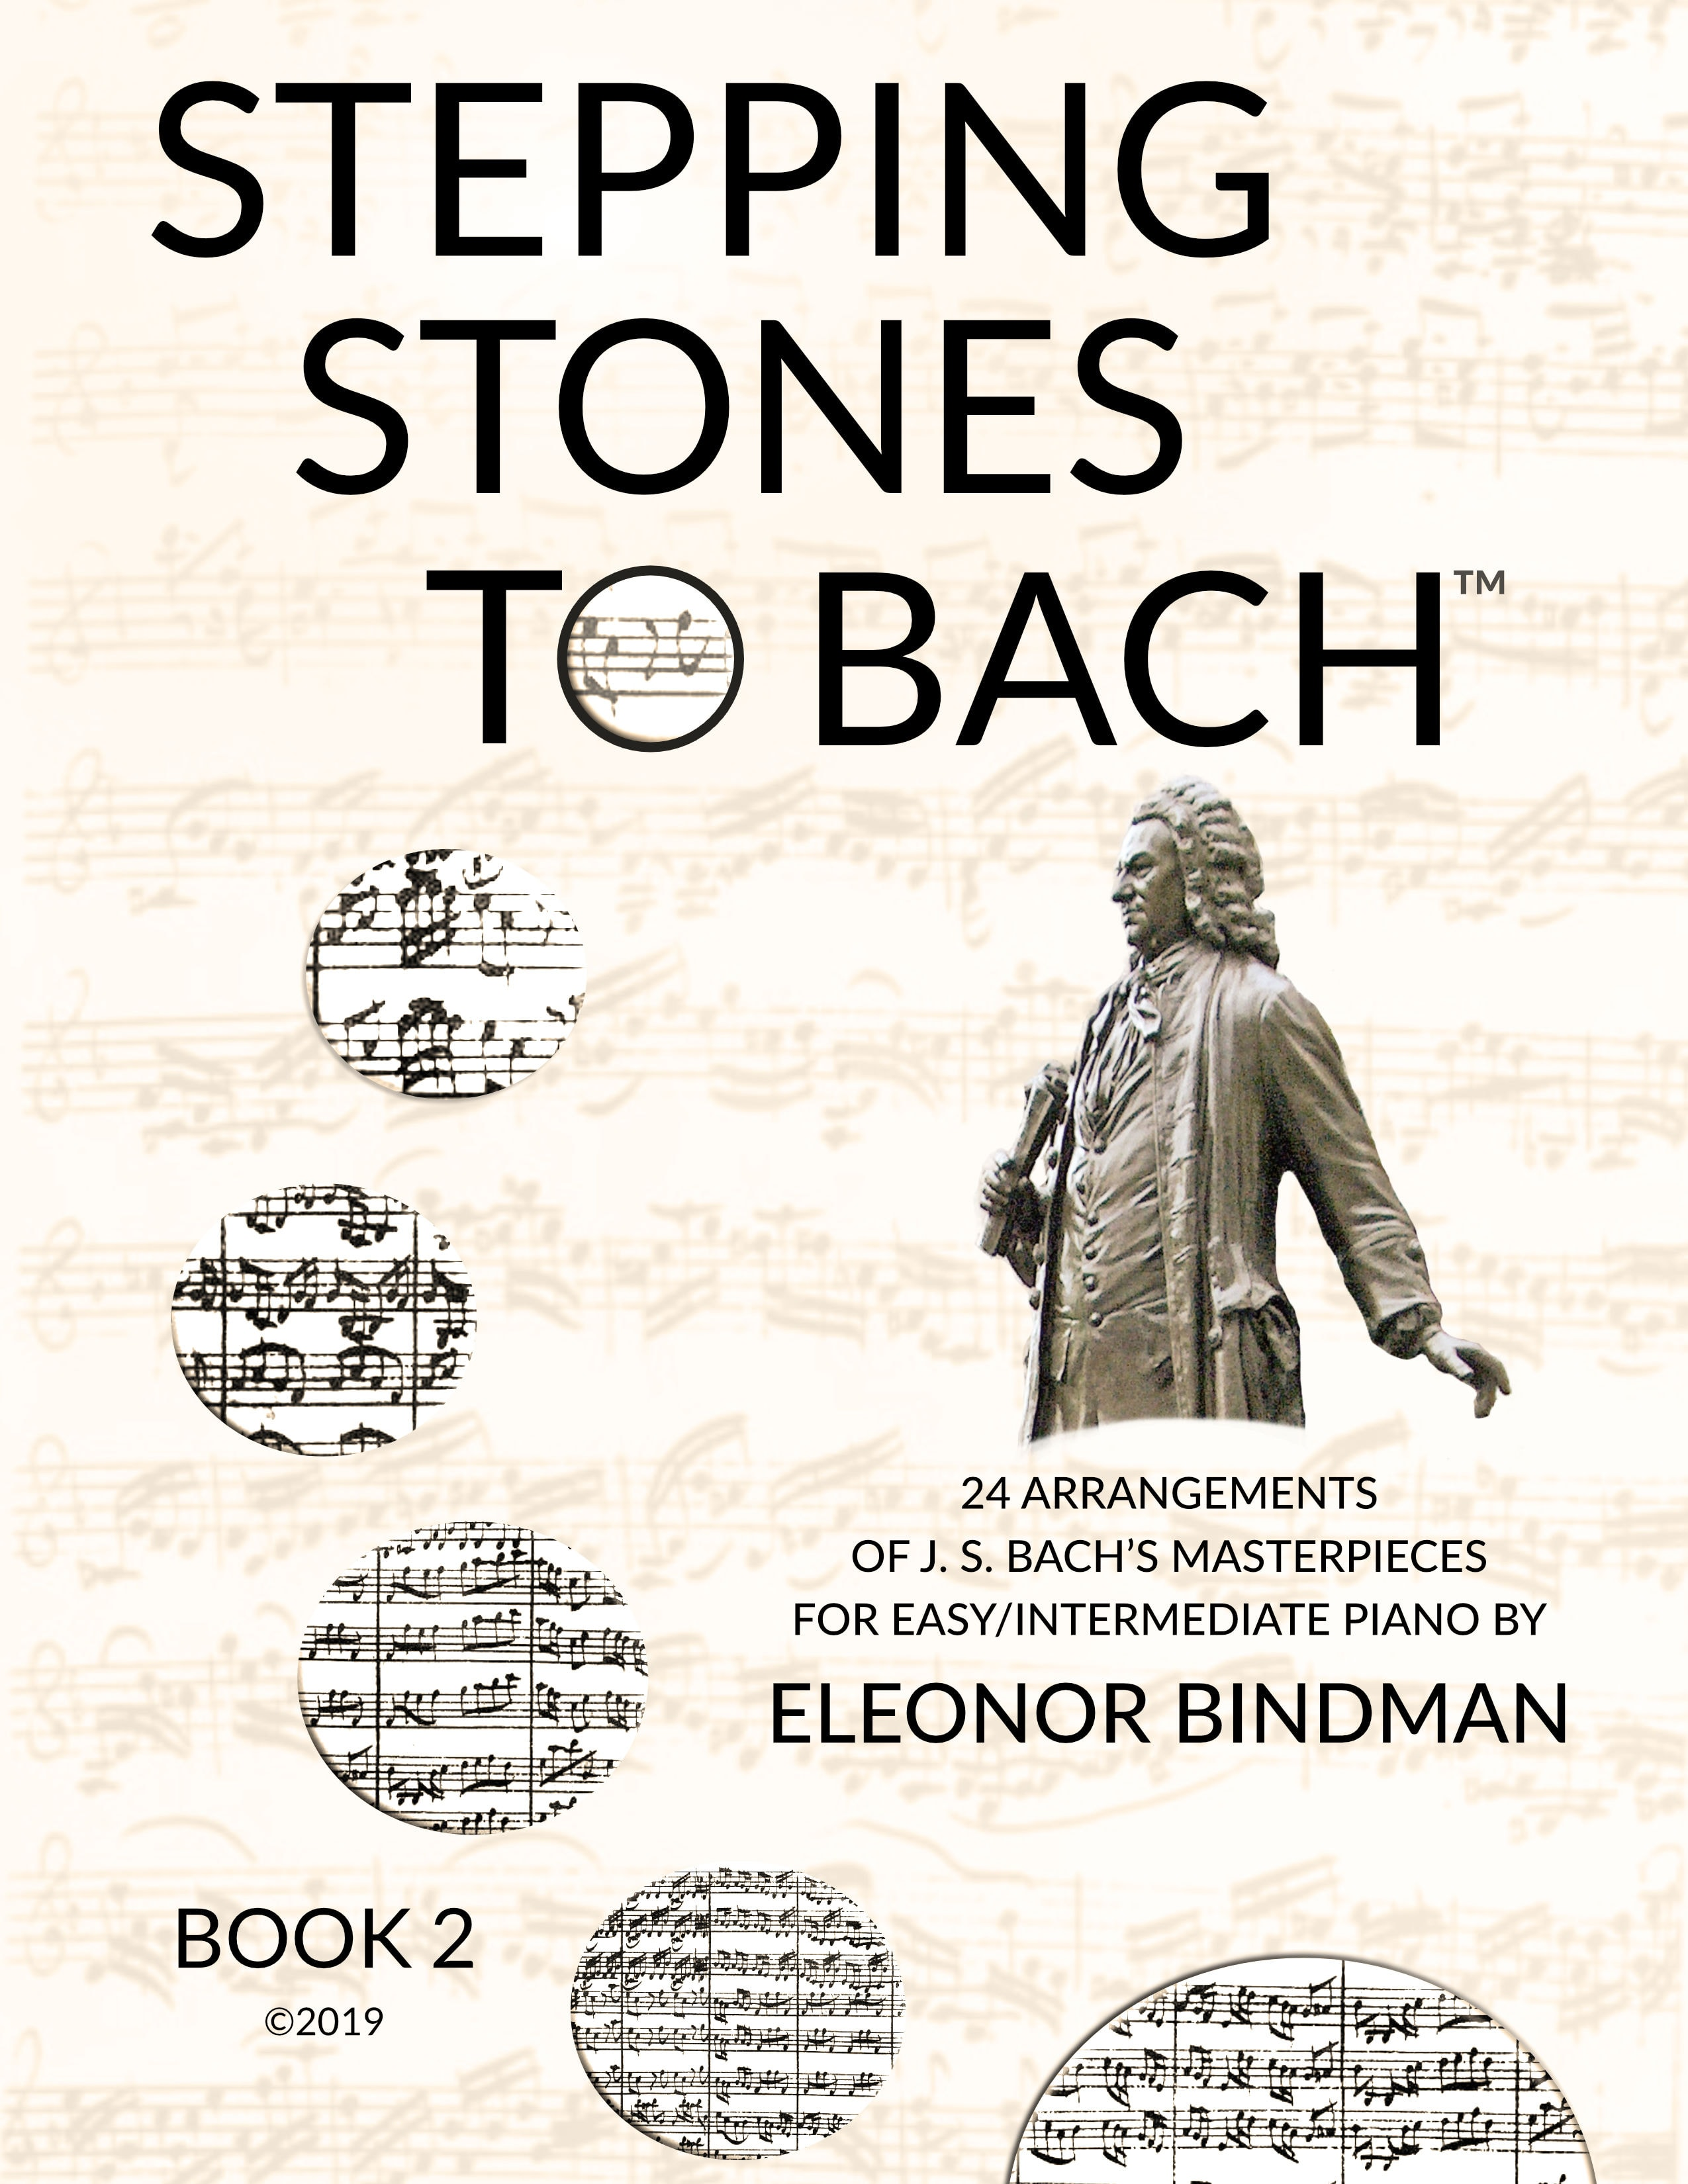 Stepping Stones to Bach, Book 2